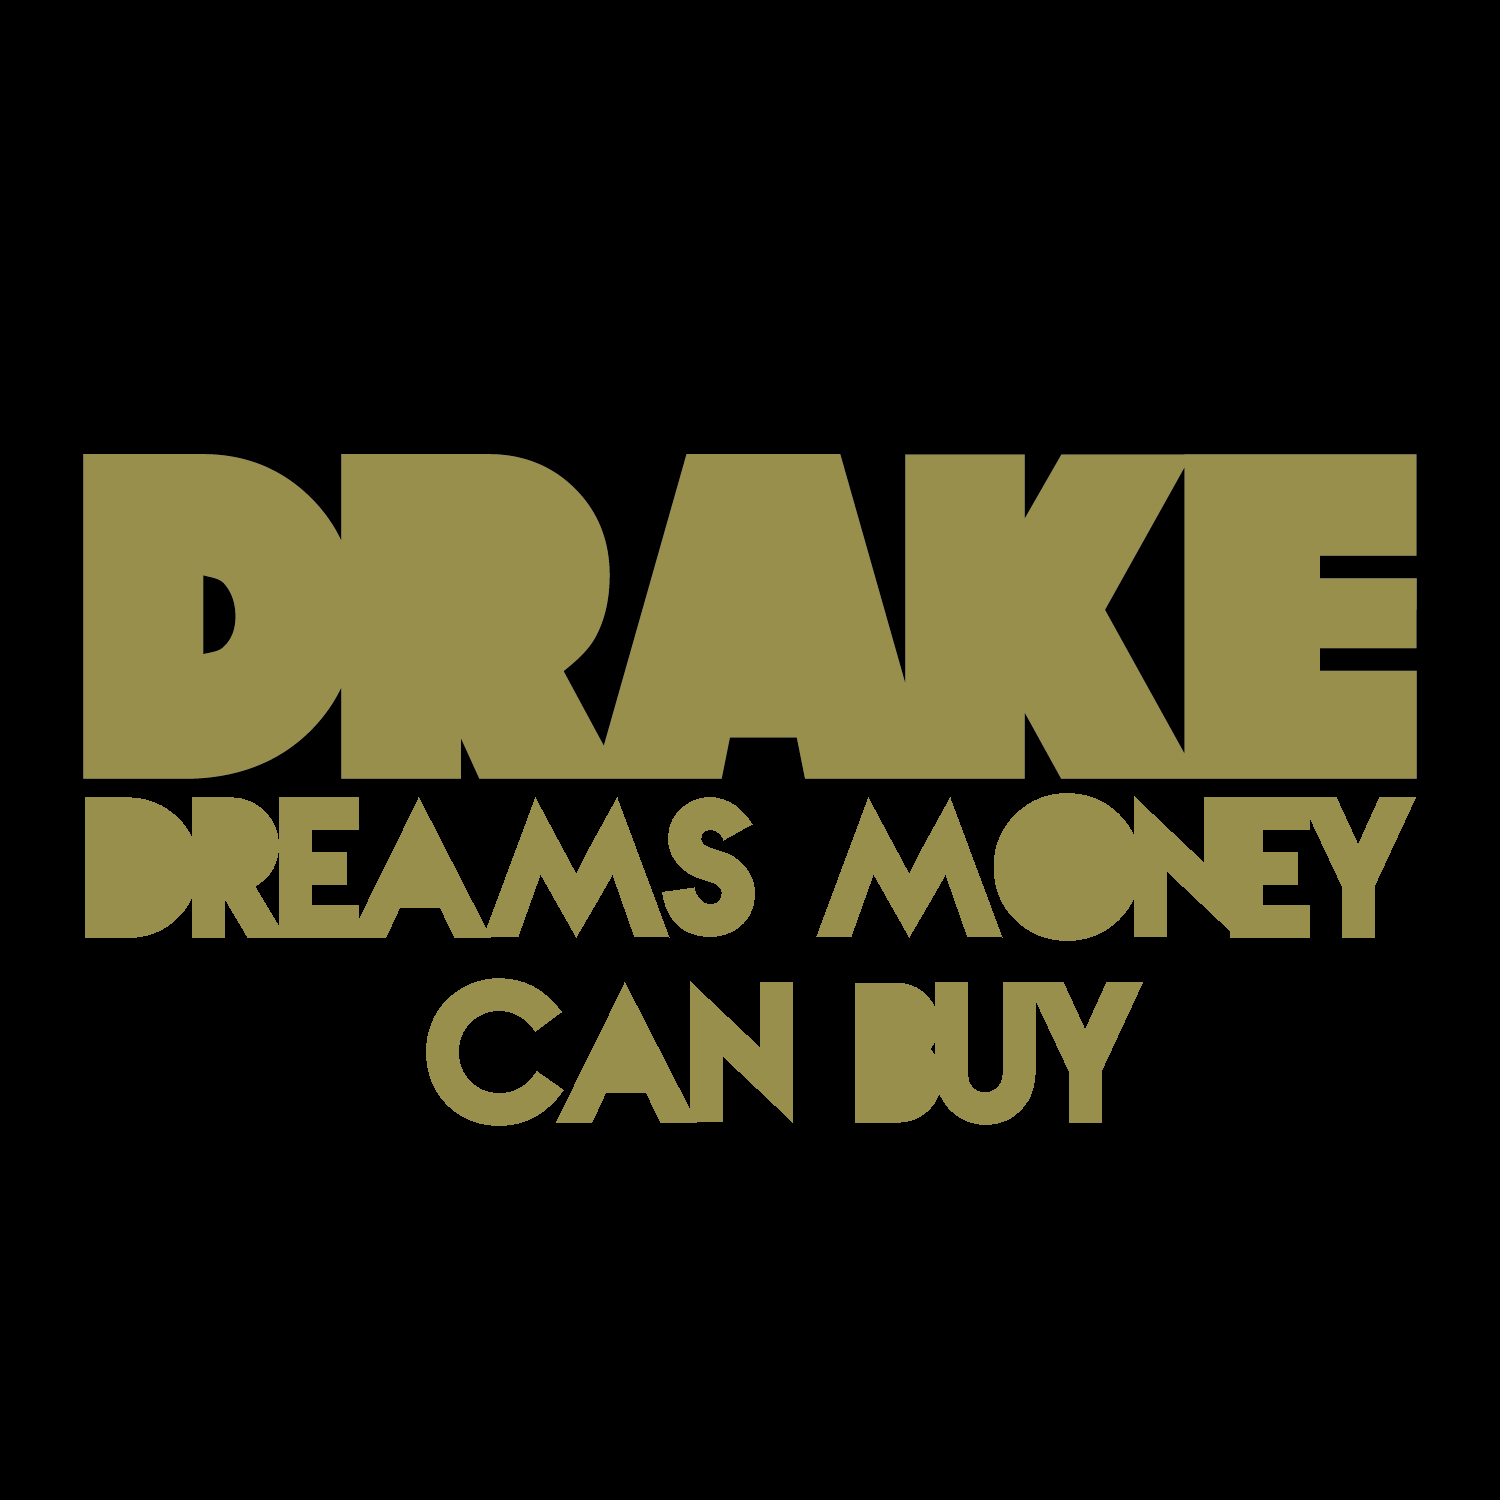 Buy: Dreams Money Can Buy